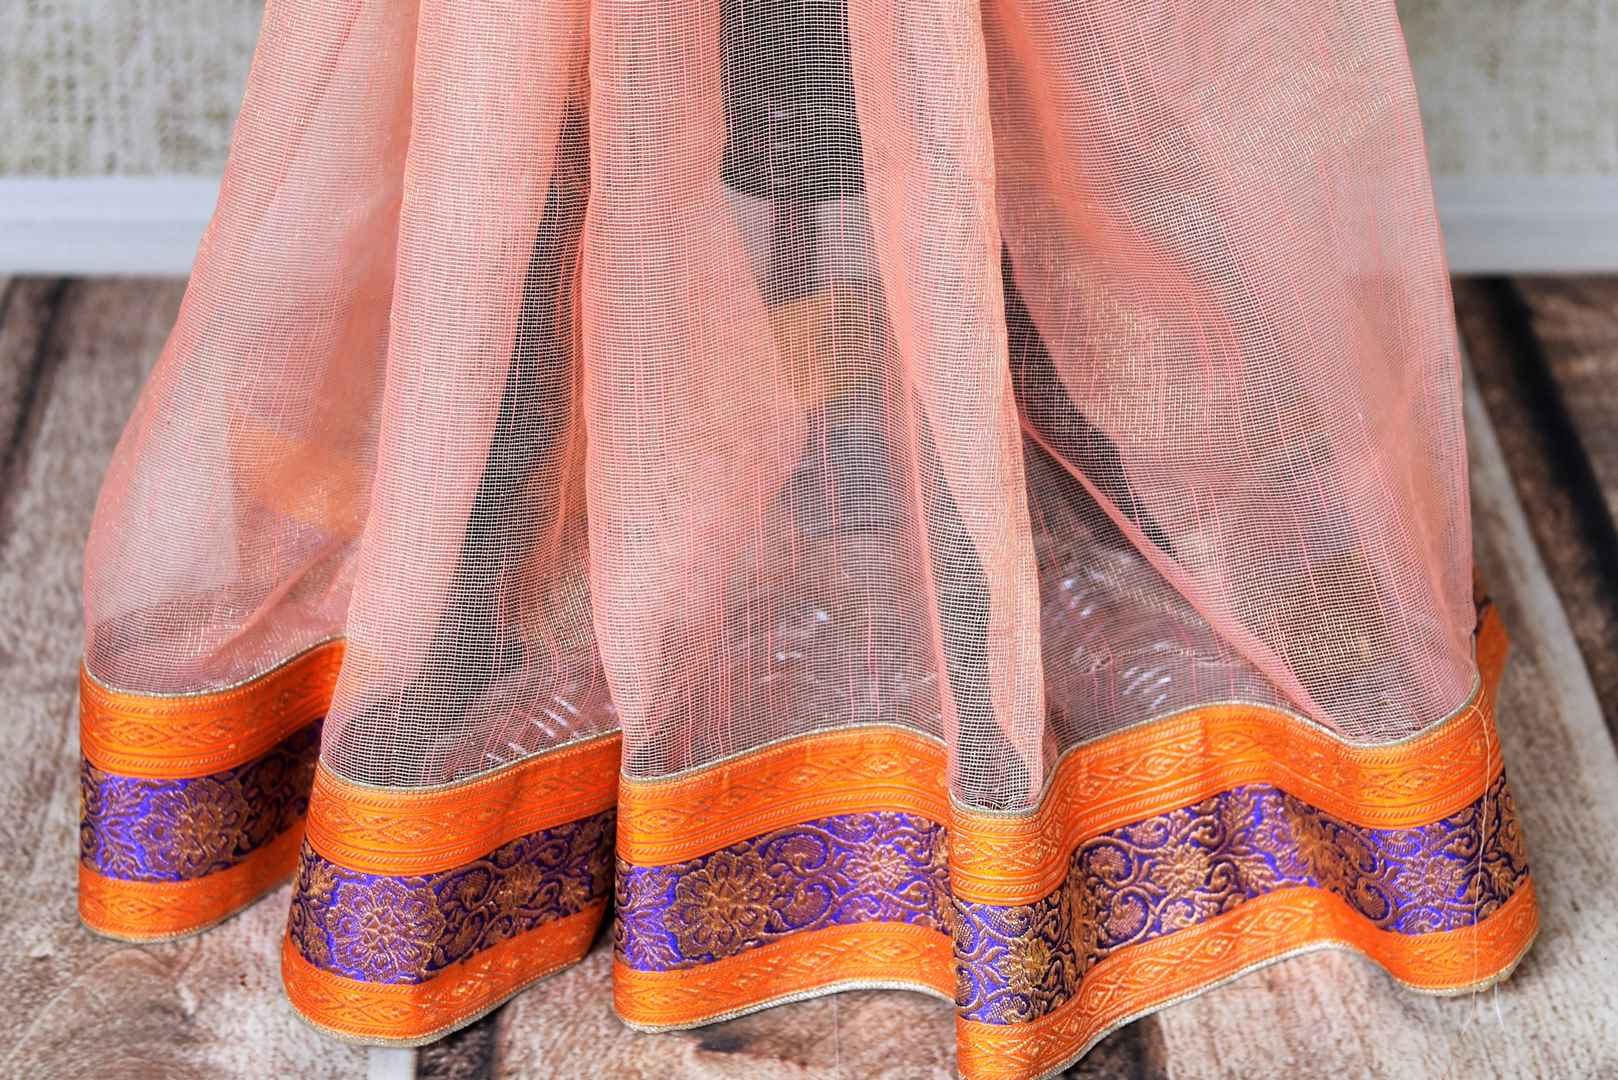 Shop peach tissue handloom sari online in USA with Banarasi border from Pure Elegance online store. Visit our exclusive Indian clothing store in USA and get floored by a range of exquisite pure handloom sarees, Banarasi sarees, silk sarees, Indian jewelry and much more to complete your ethnic look.-pleats